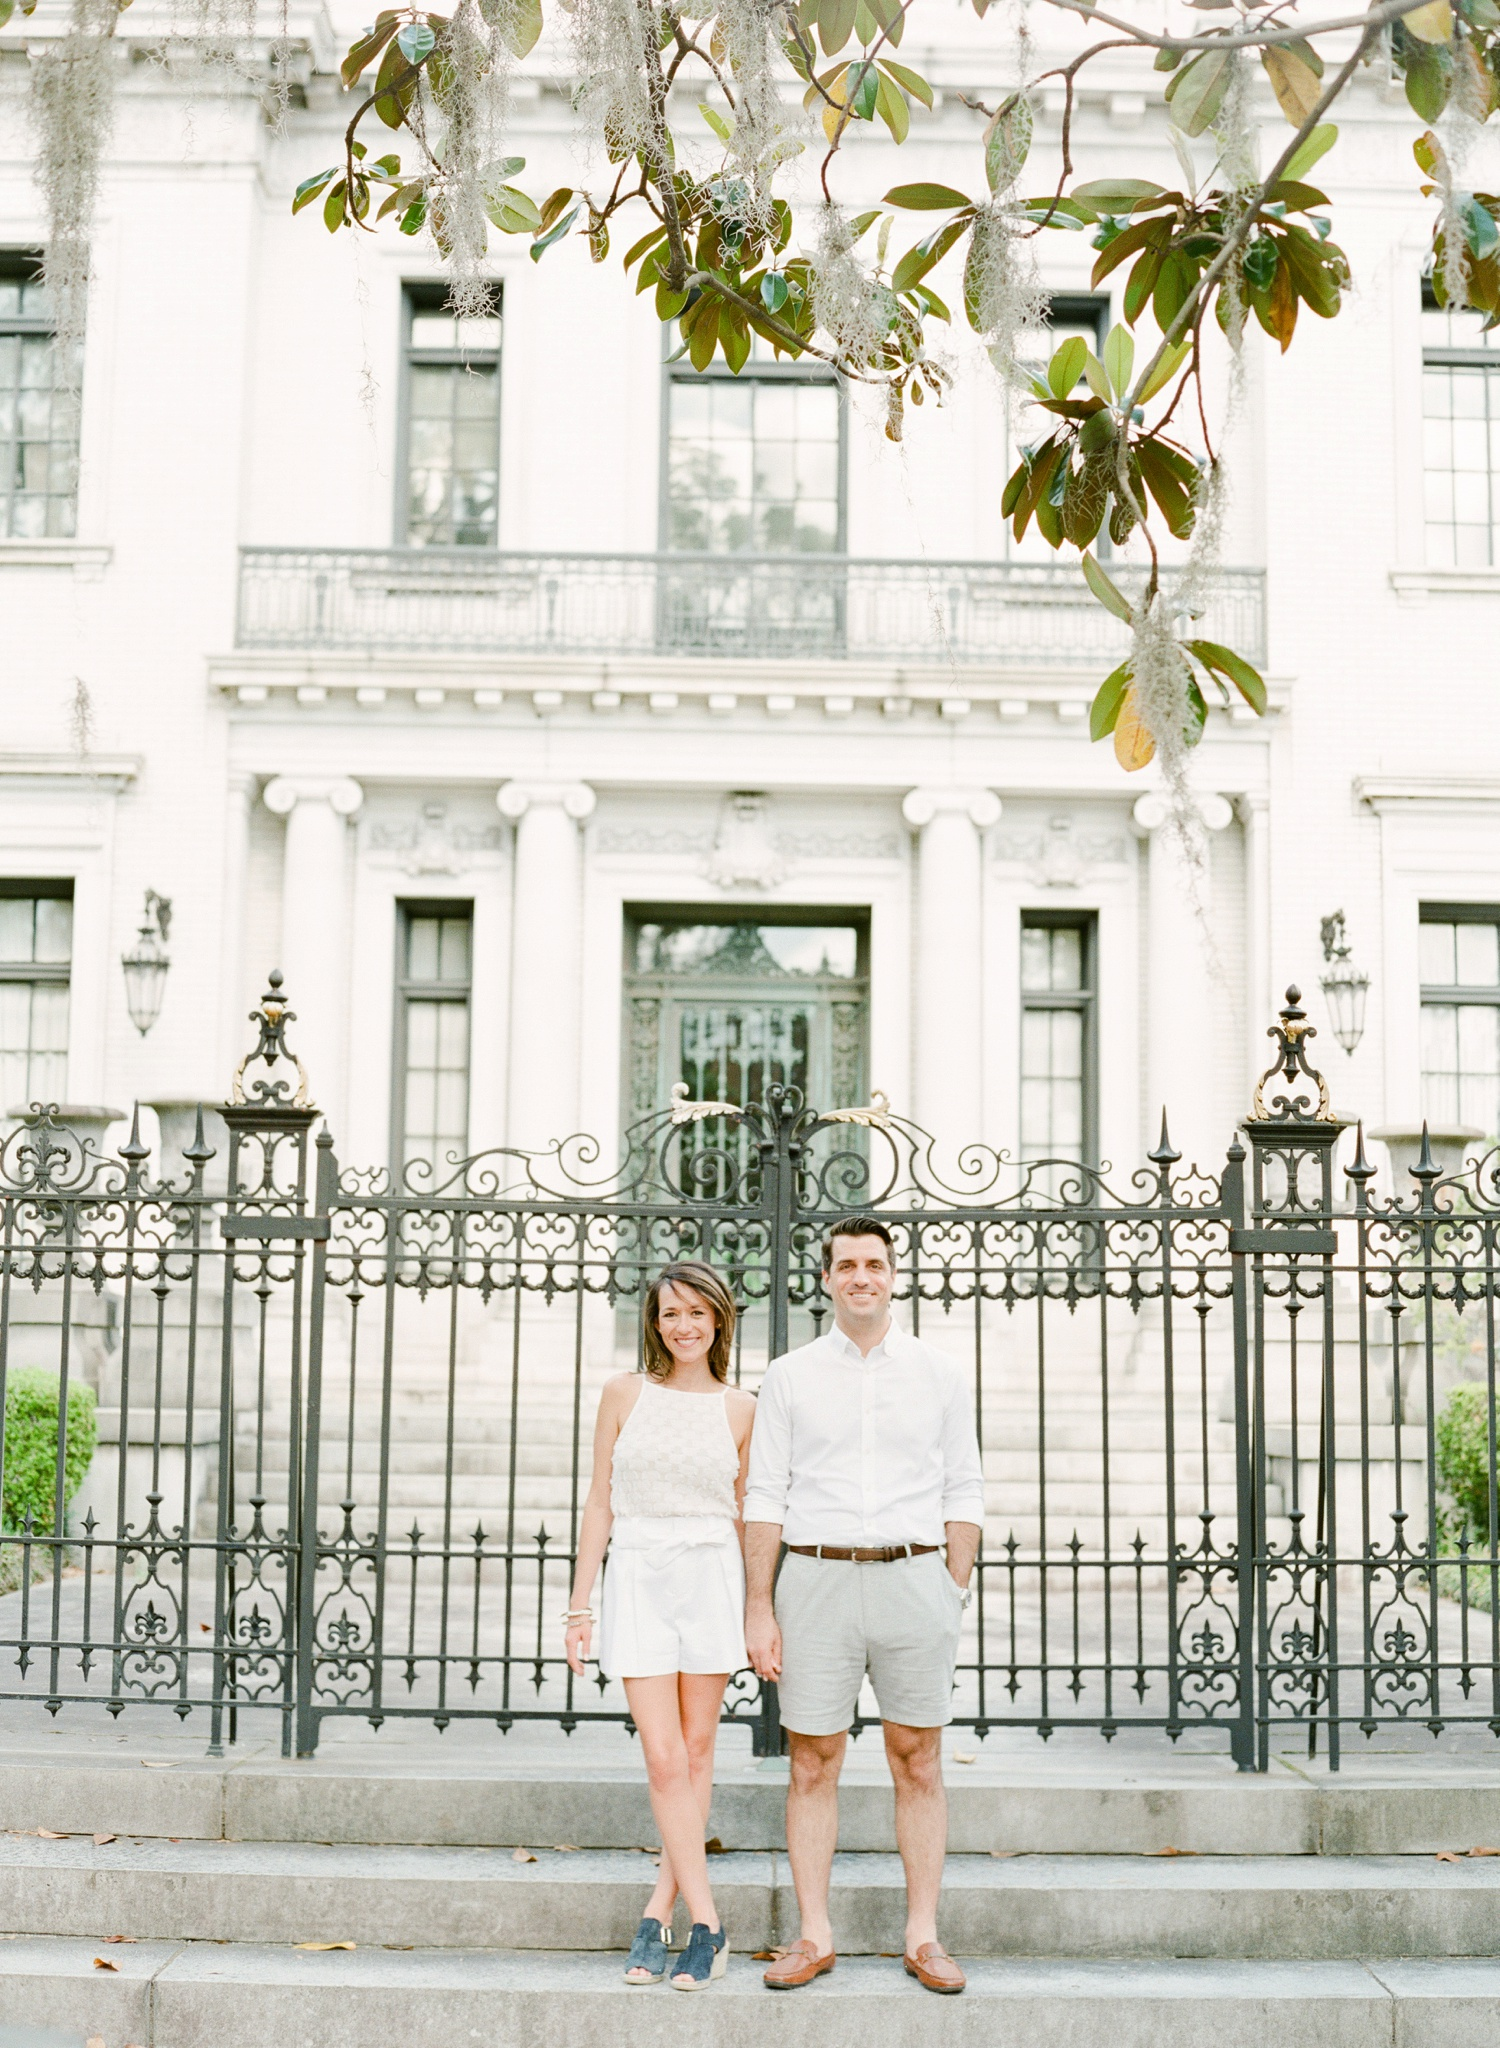 Downtown-Savannah-Georgia-Engagement-Session-By-The-Happy-Bloom_0105.jpg